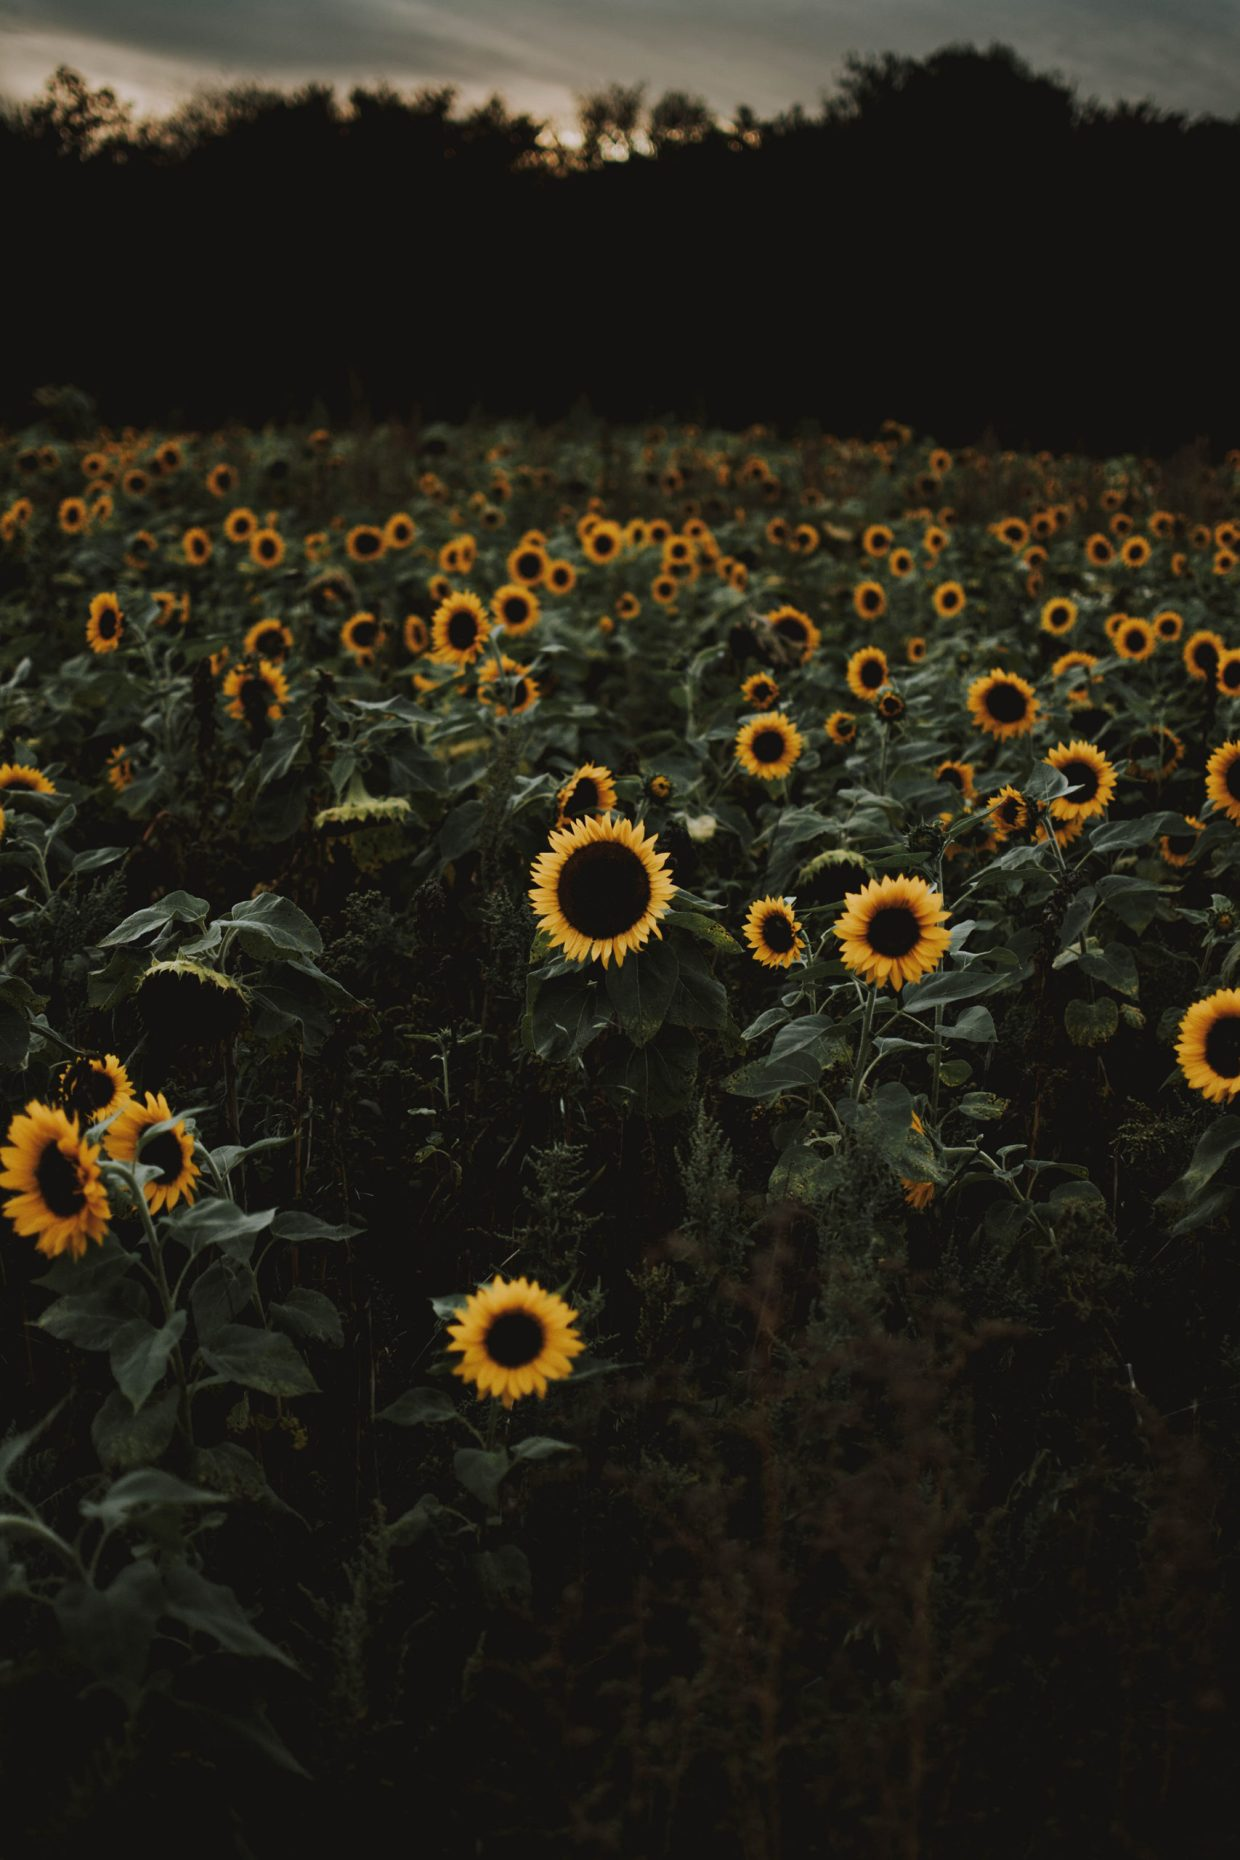 Field of sunflowers at dusk; sunflowers are often used in companion planting